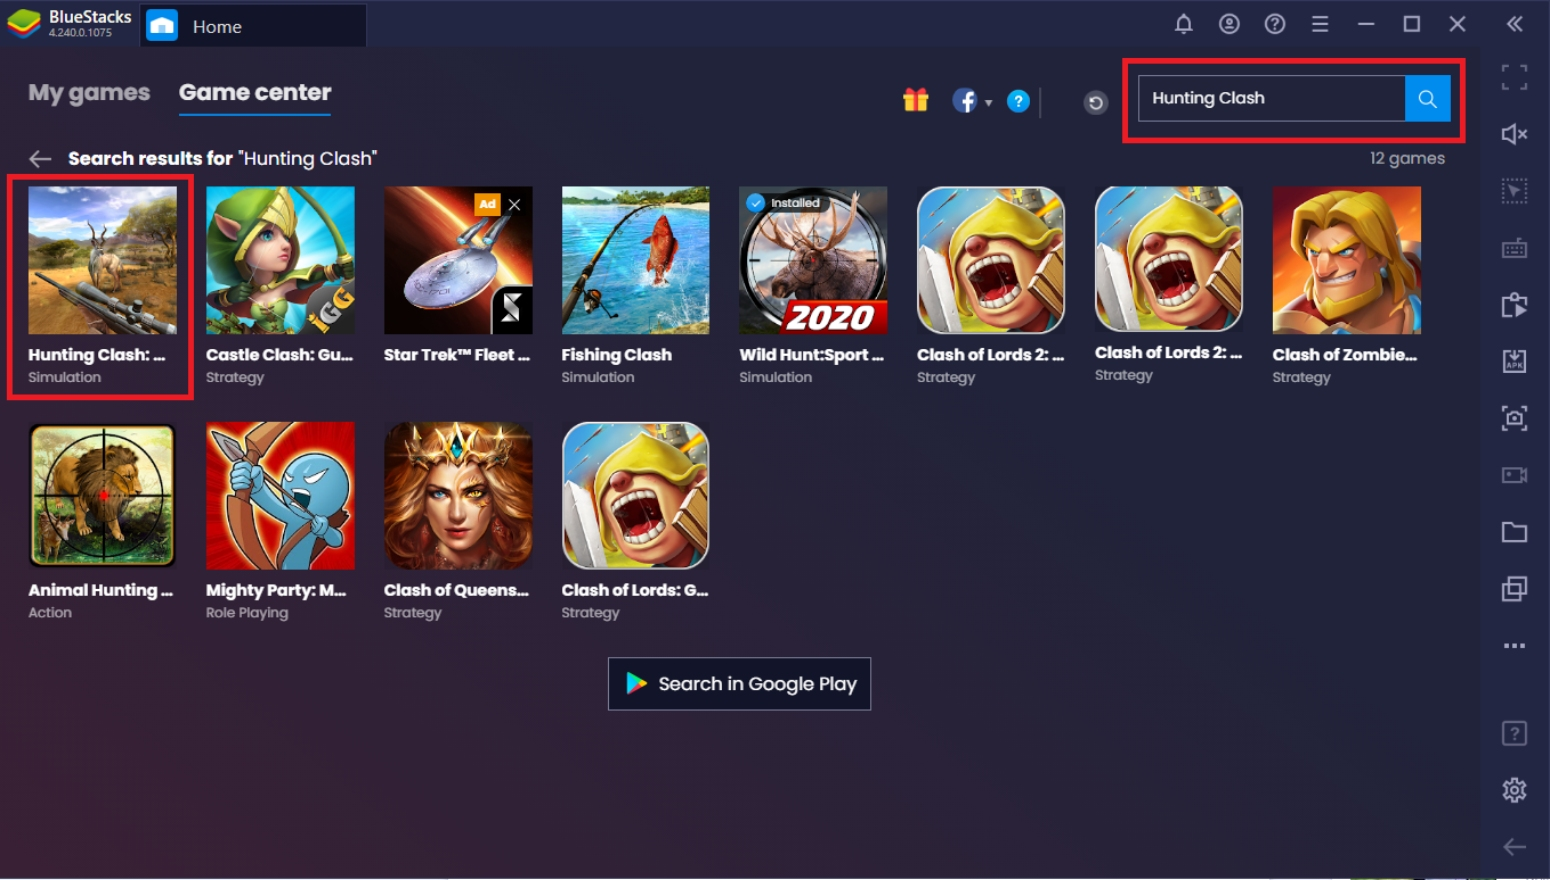 How to Play Hunting Clash On PC With BlueStacks